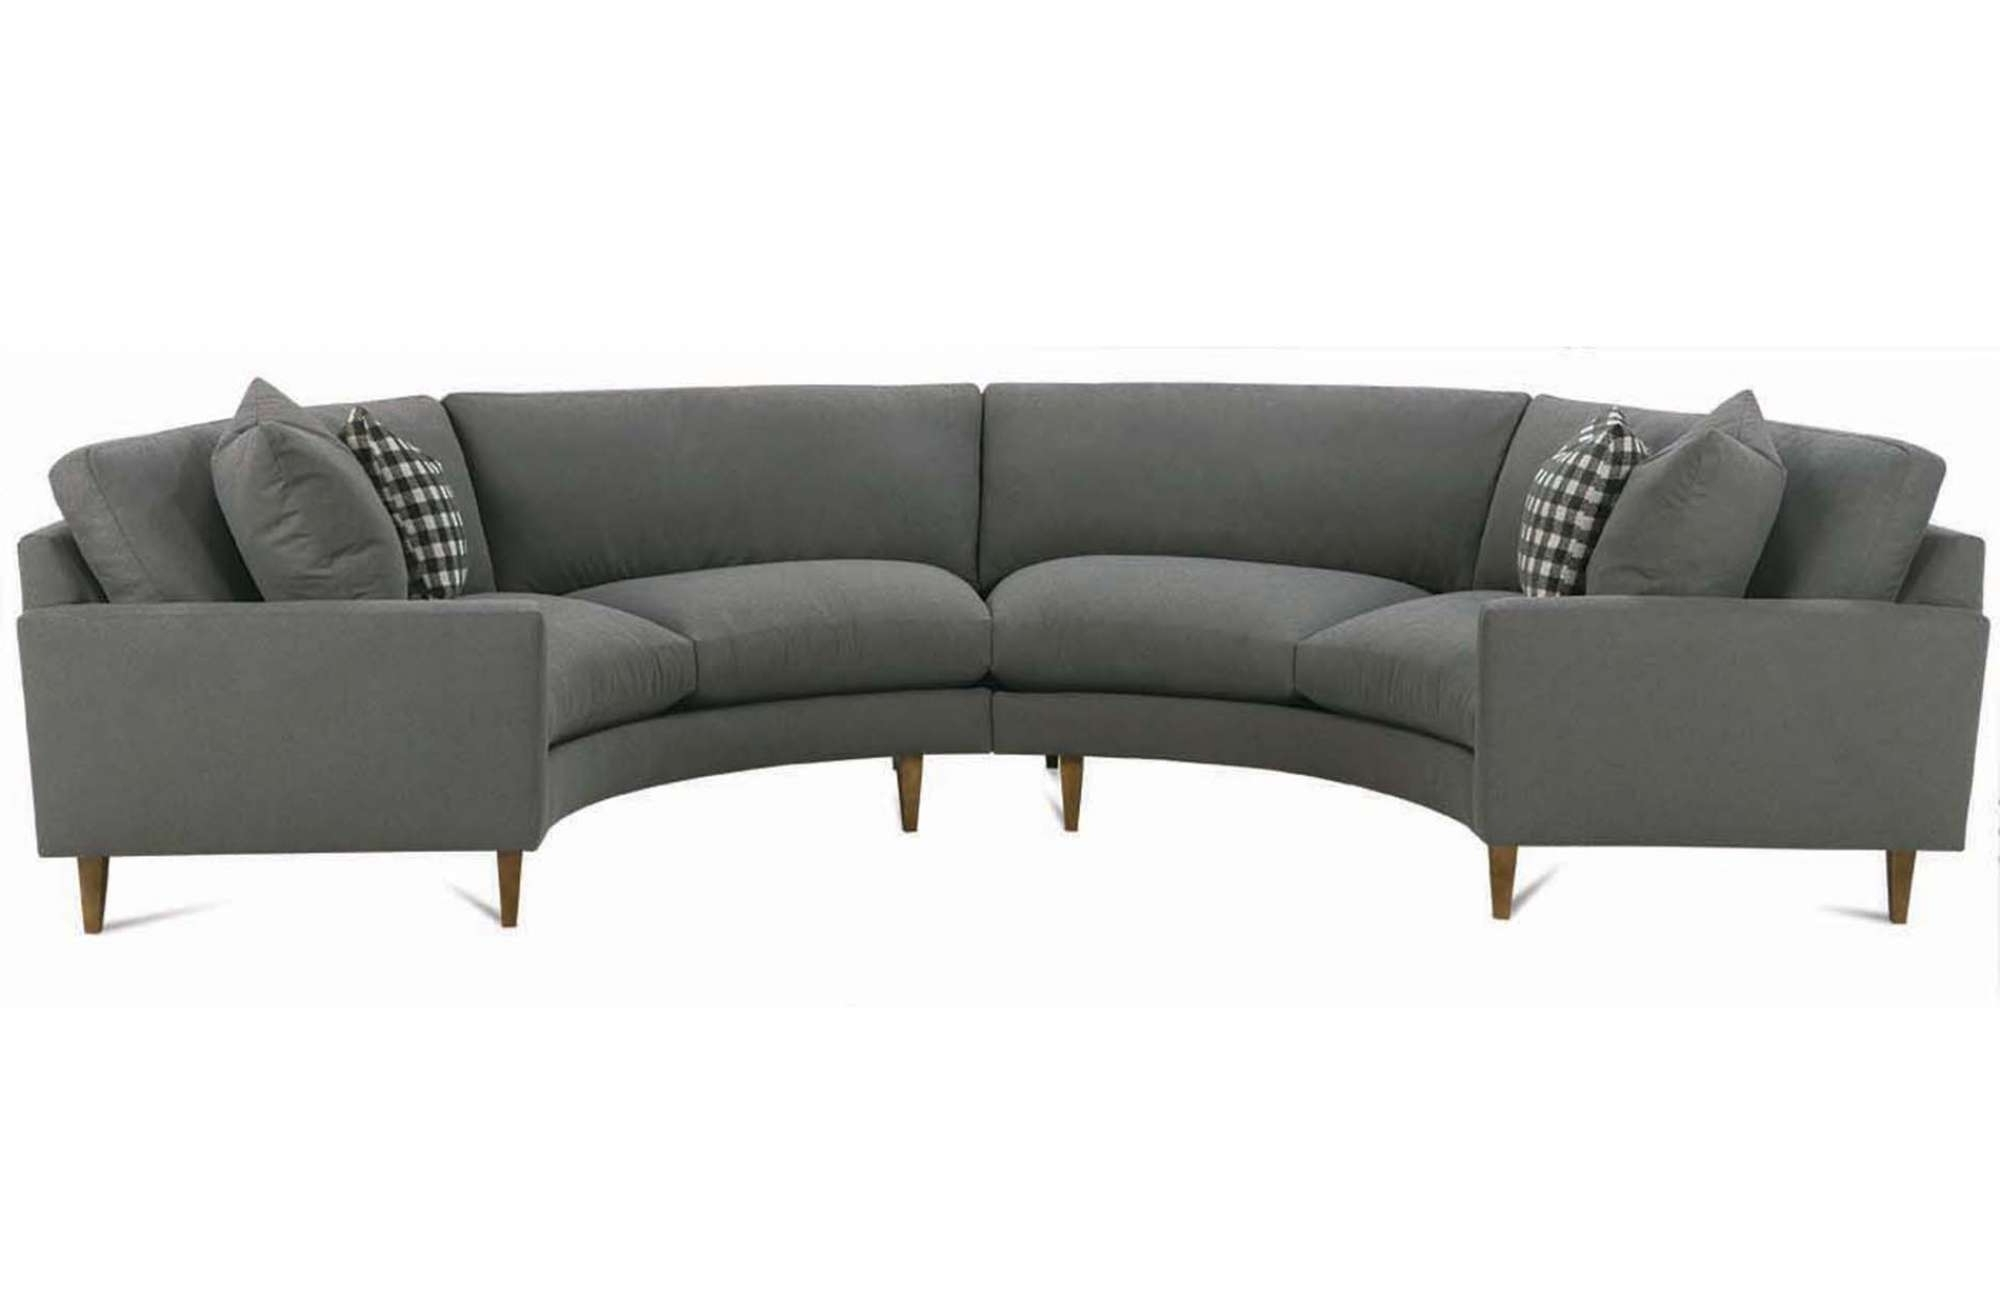 Widely Used Mobilia Sectional Sofas Inside Ripley Curved Sectional (View 11 of 20)